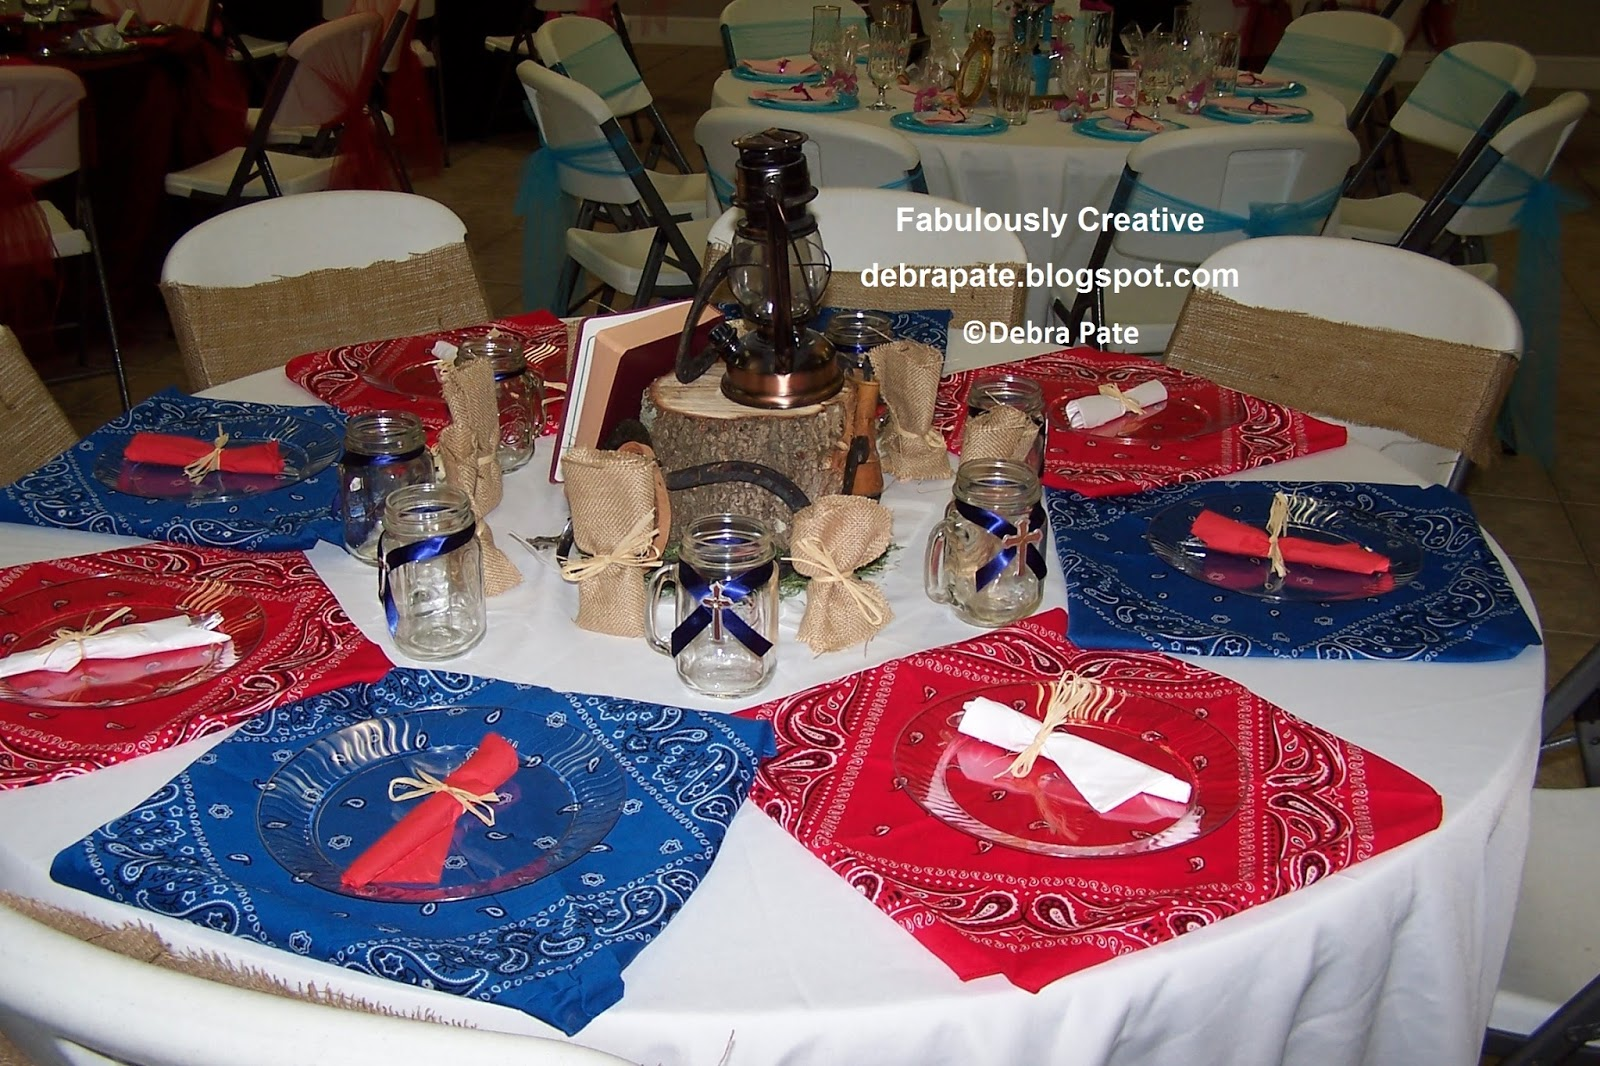 Fabulously Creative SHOE THEMED PARTY Table 5 : 1006752d from debrapate.blogspot.com size 1600 x 1066 jpeg 422kB